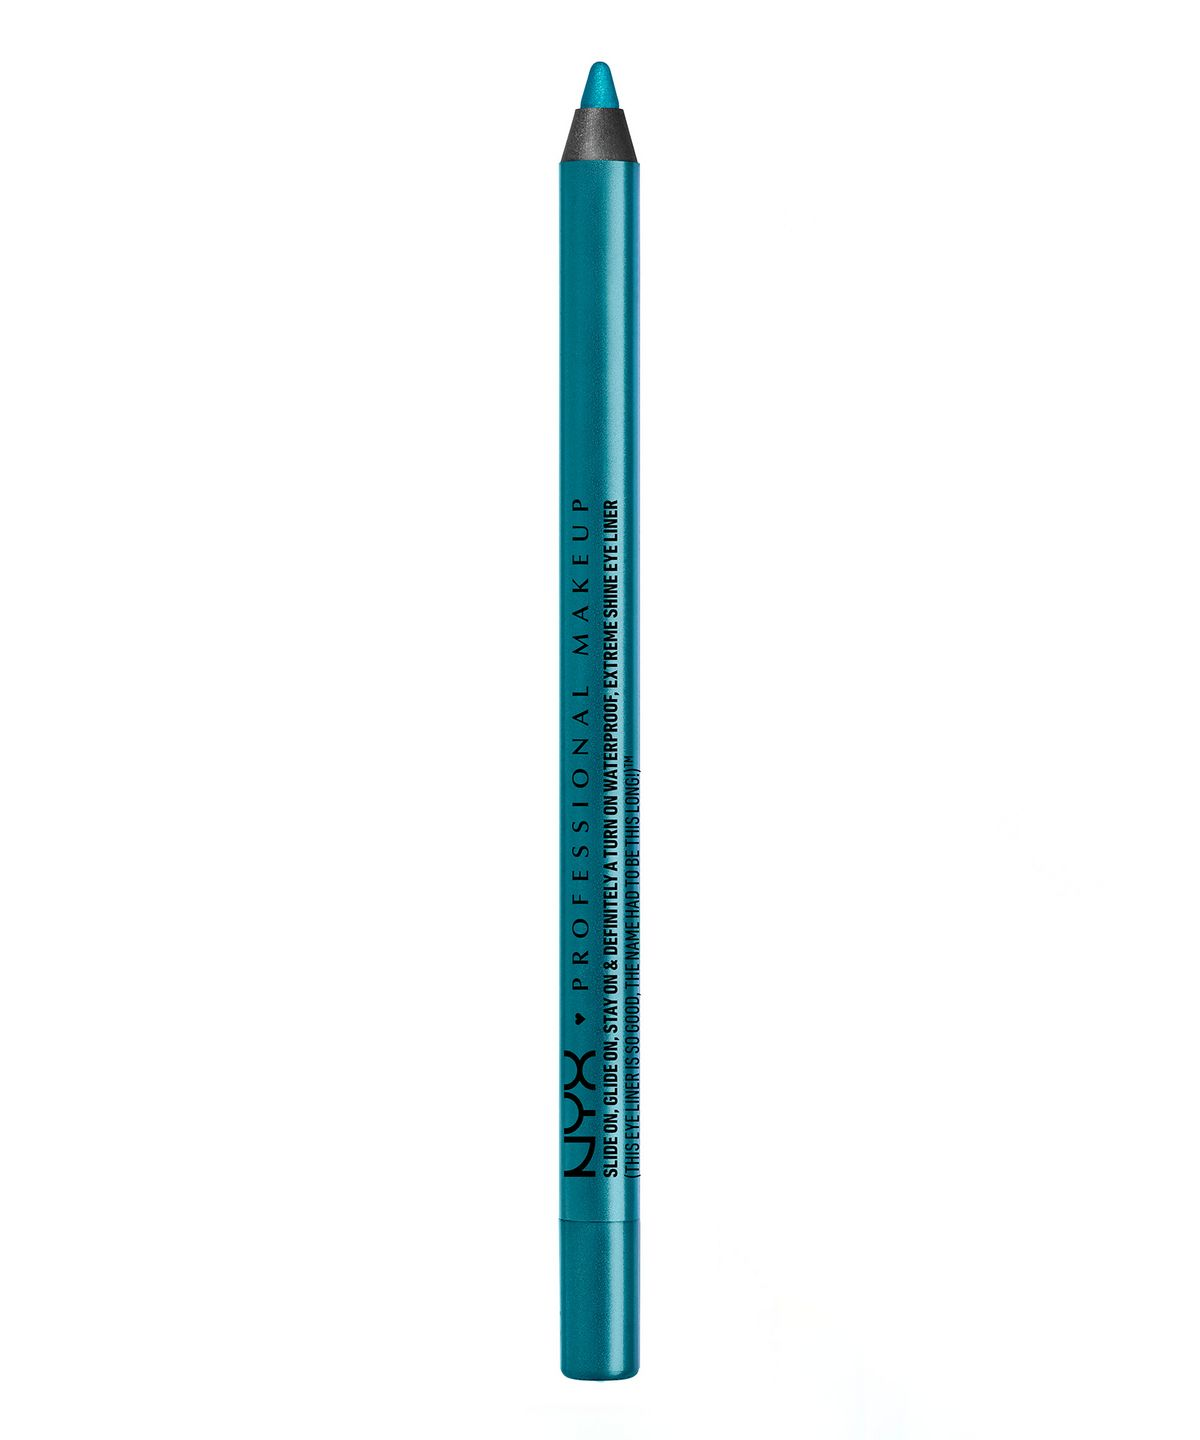 NYX PROFESSIONAL MAKEUP Slide On Pencil, £6.00 ( 1.2g )